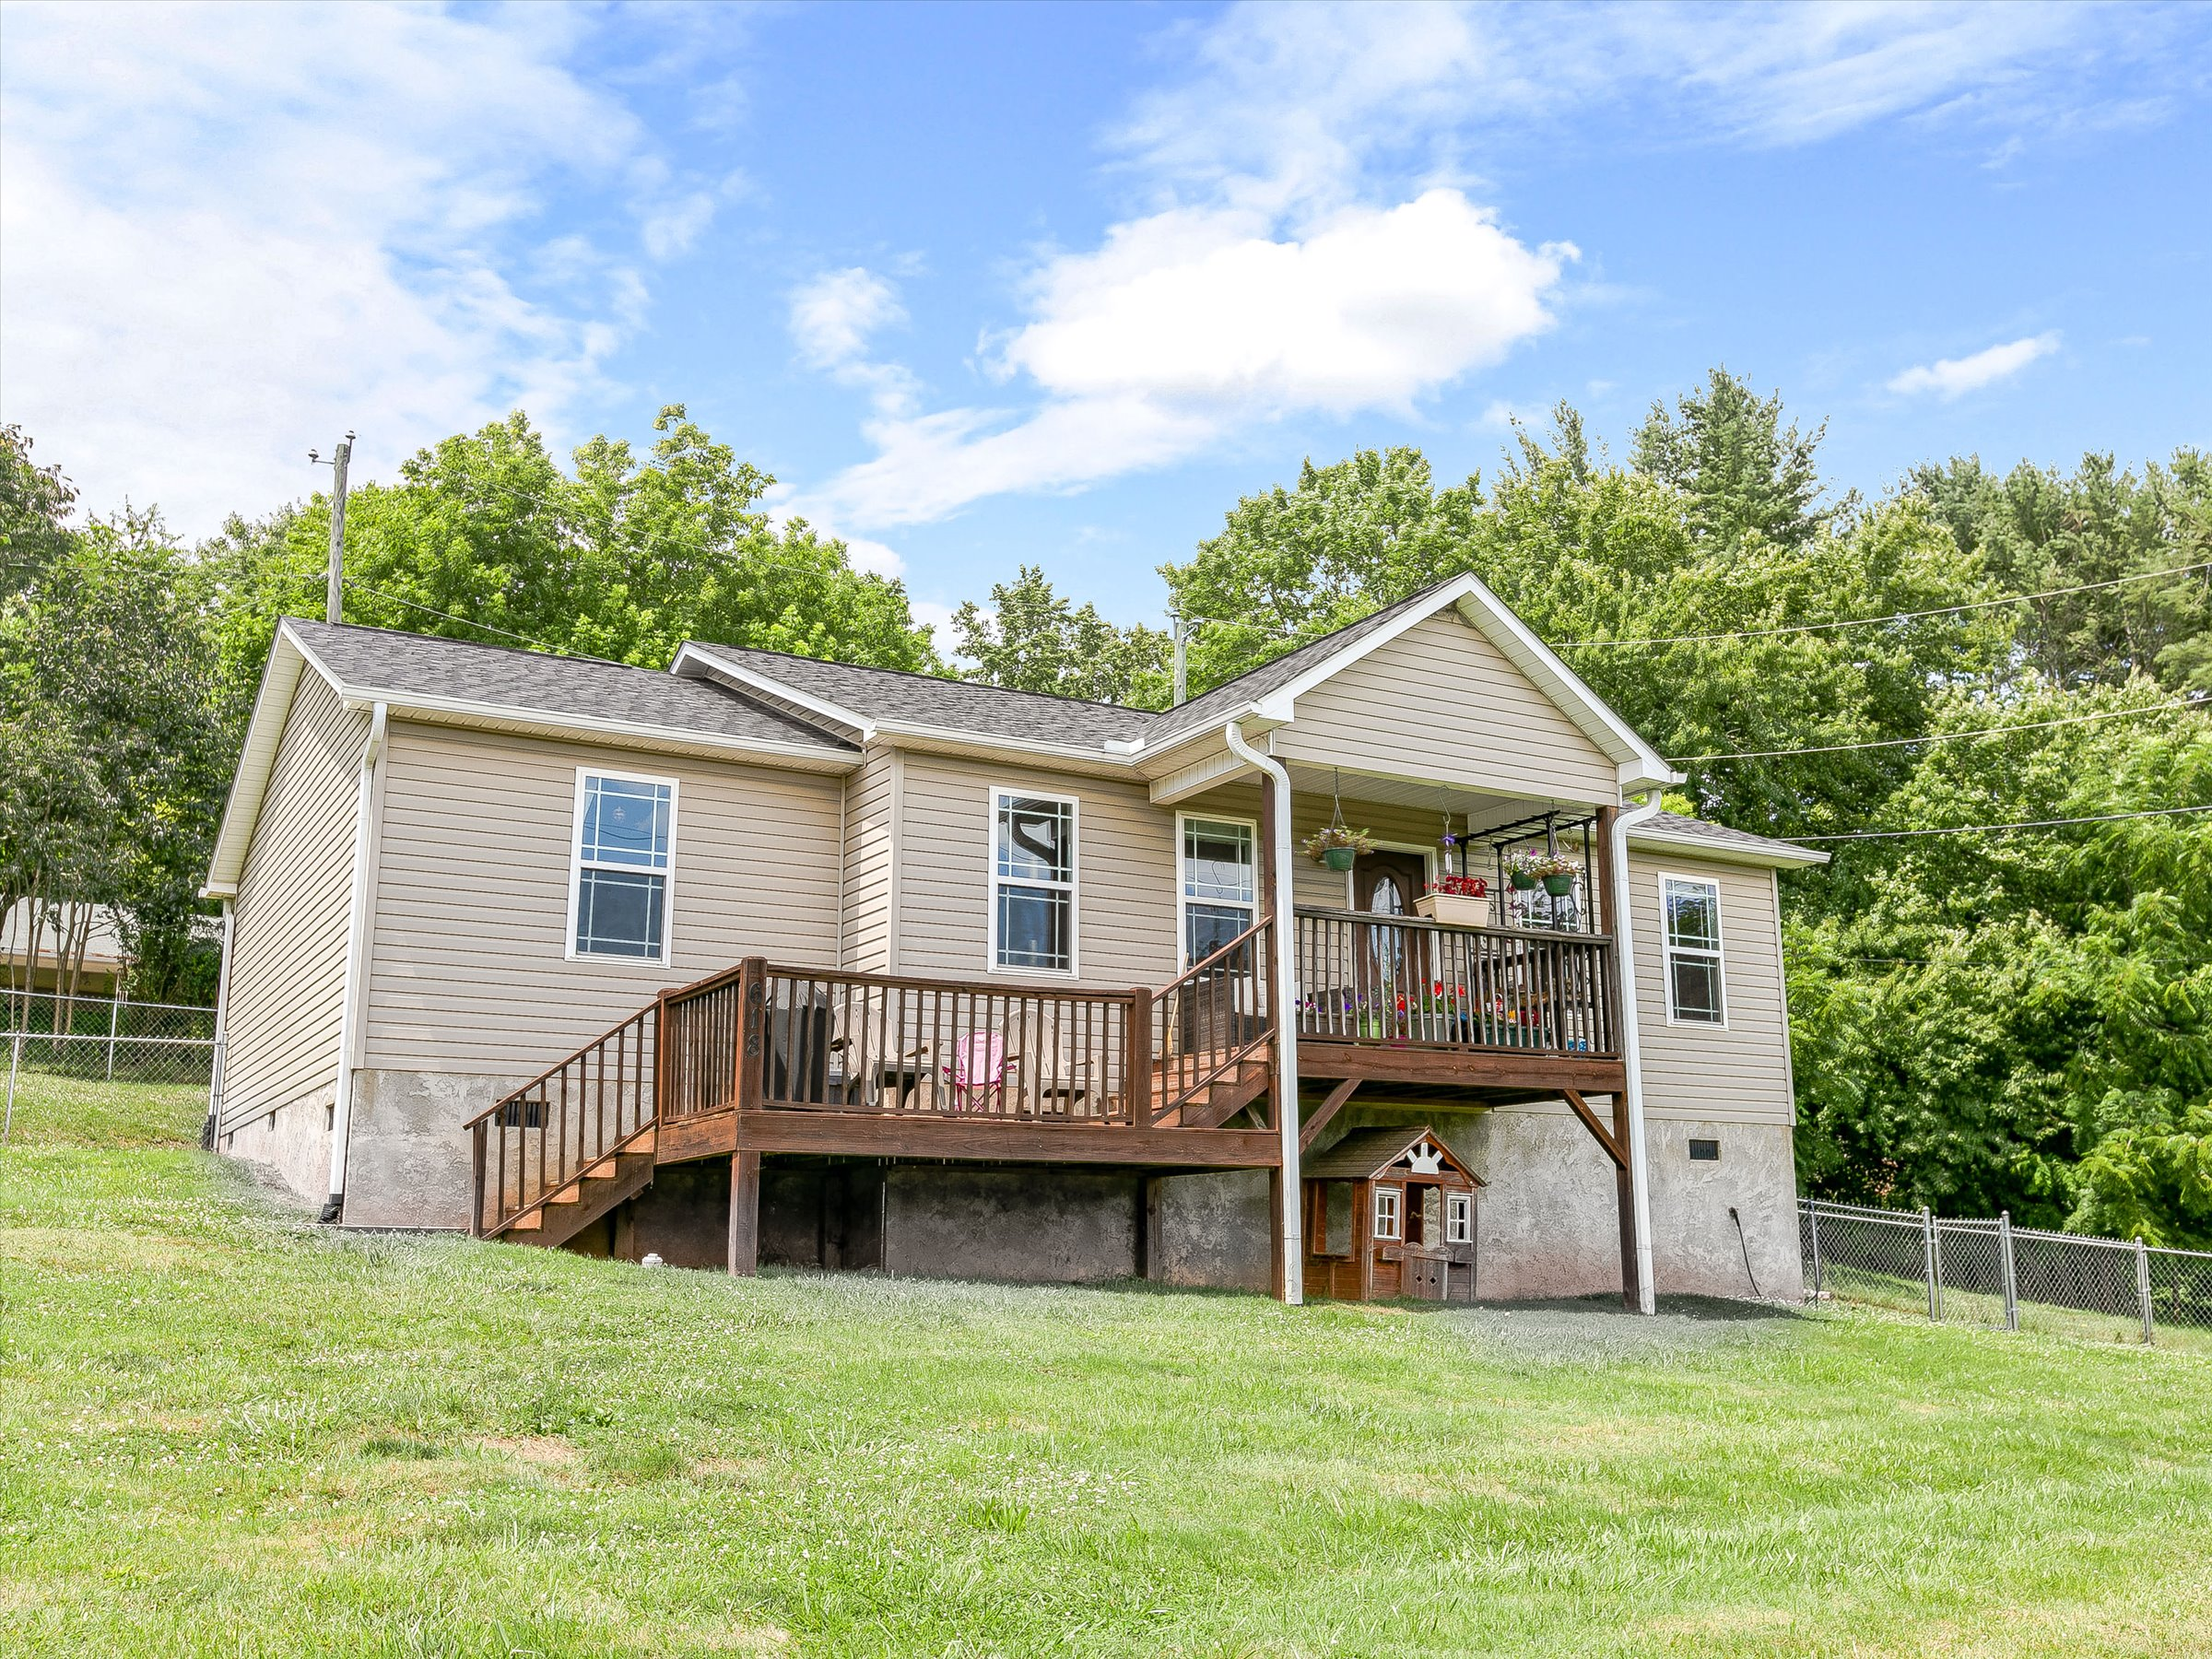 3 BR / 2 BA Ranch for Sale in Candler